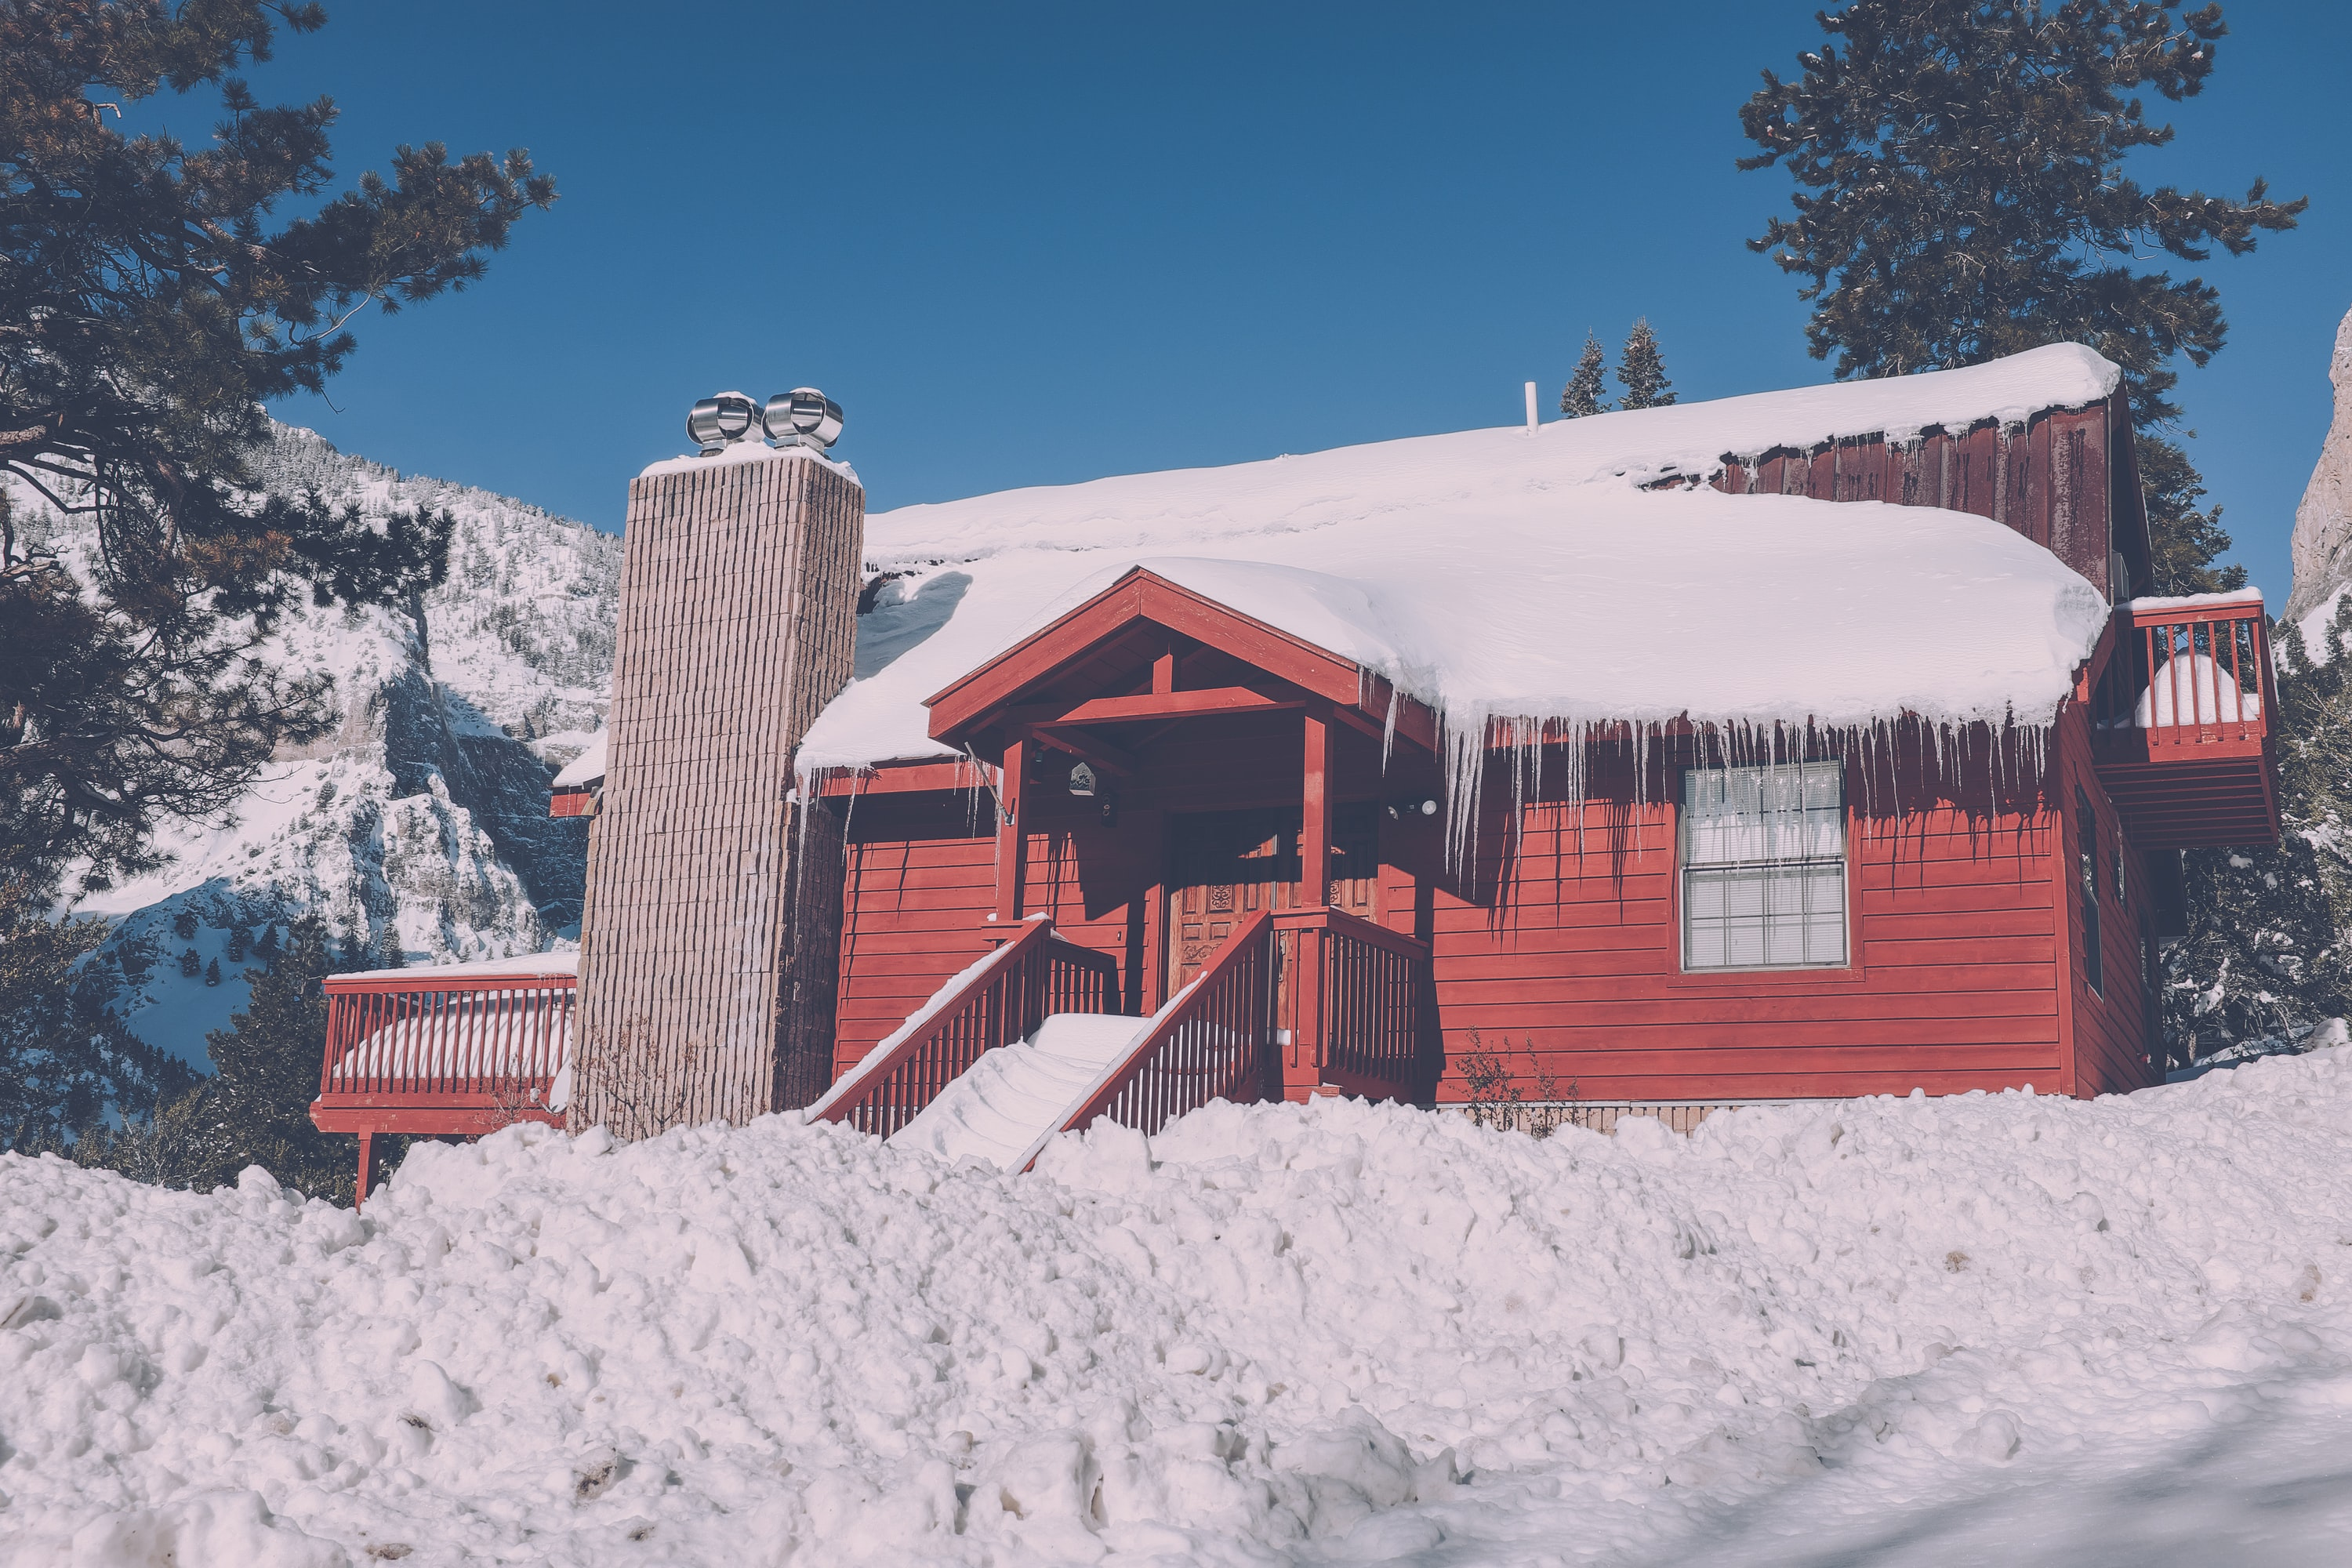 A large red cabin sitting in the middle of a forest around Mount Charleston, Nevada